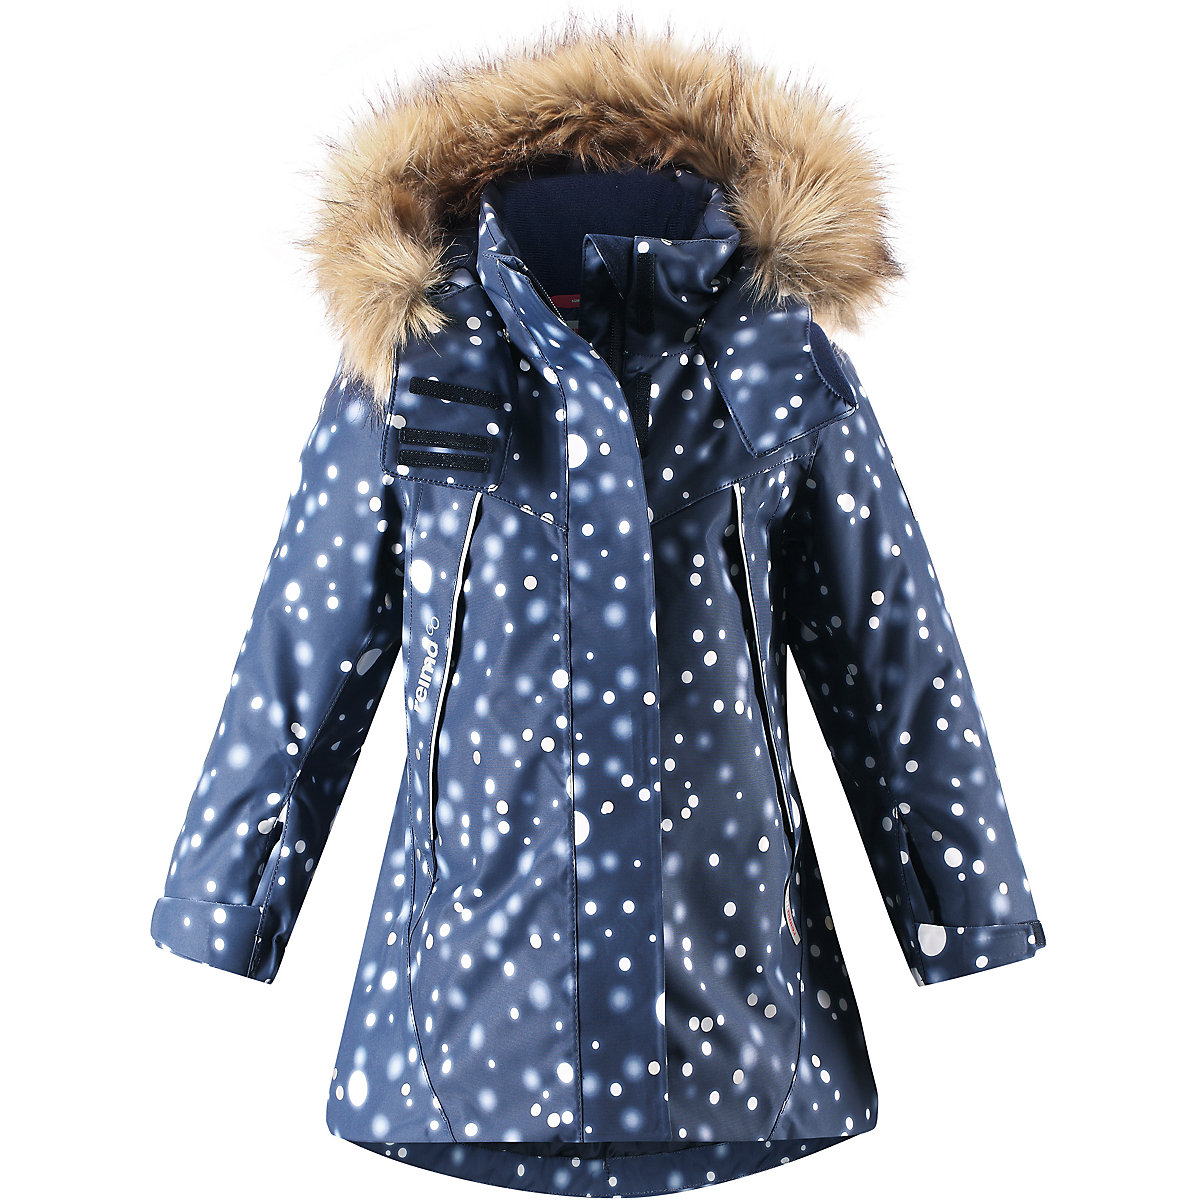 REIMA Jackets & Coats 8689676 for girls baby clothing winter warm boy girl jacket Polyester icebear 2018 fashion winter jacket men s brand clothing jacket high quality thick warm men winter coat down jacket 17md811